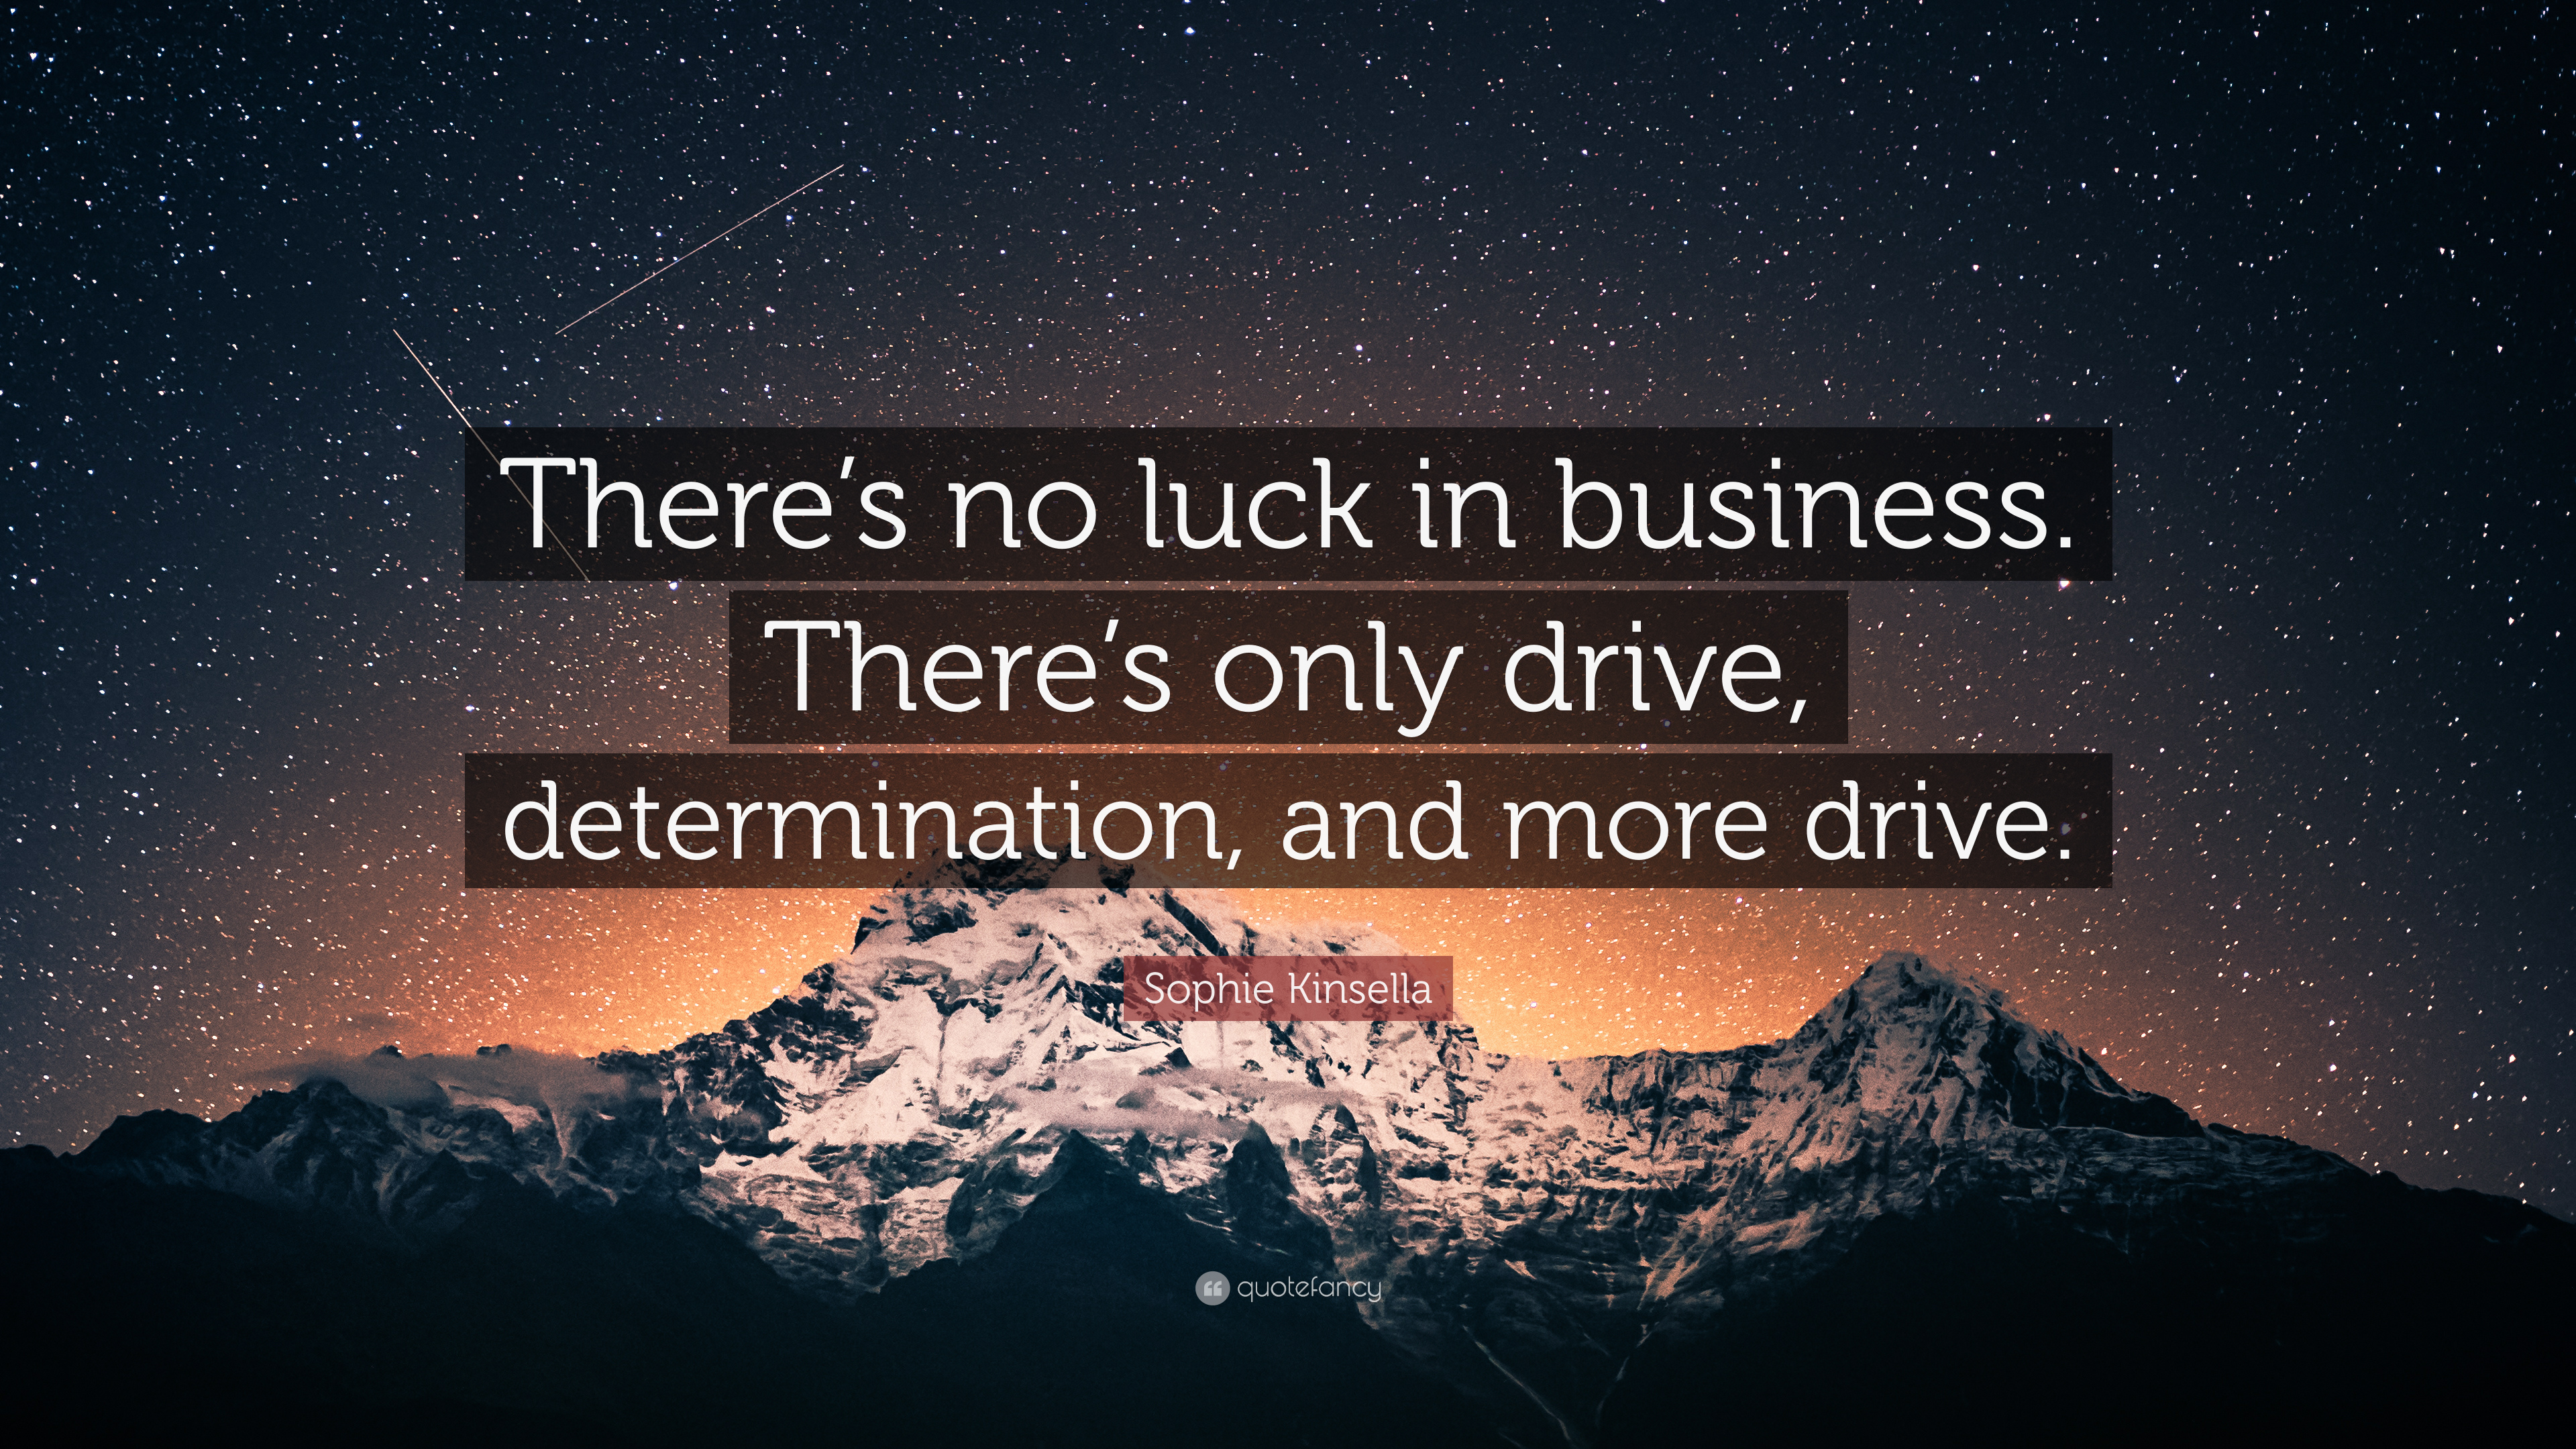 in there luck is business no